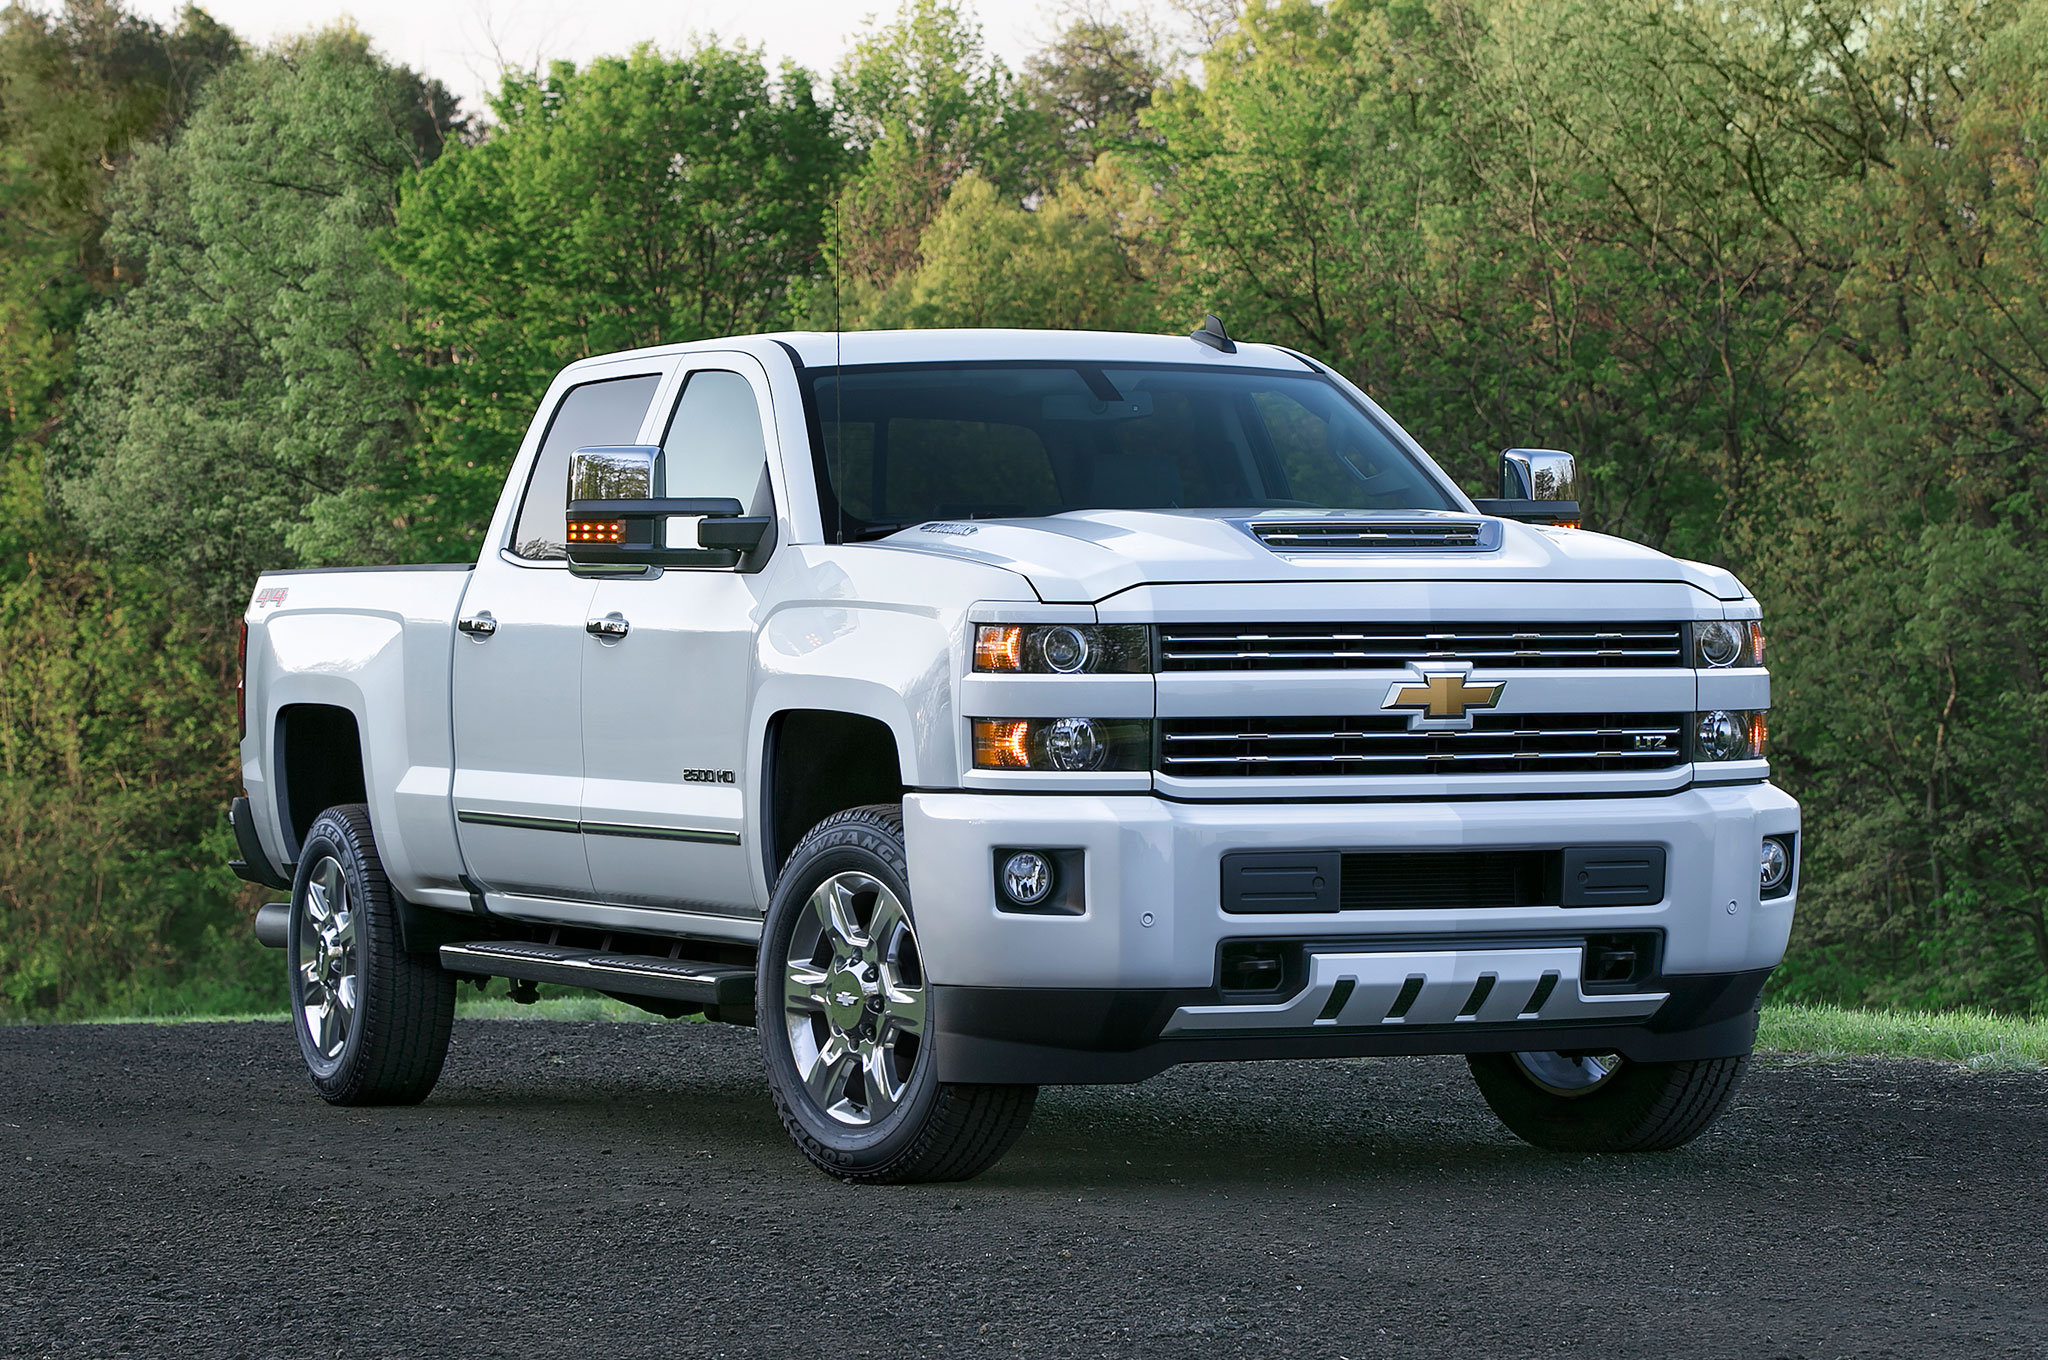 Chevy Silverado with Alternative Fuel Options